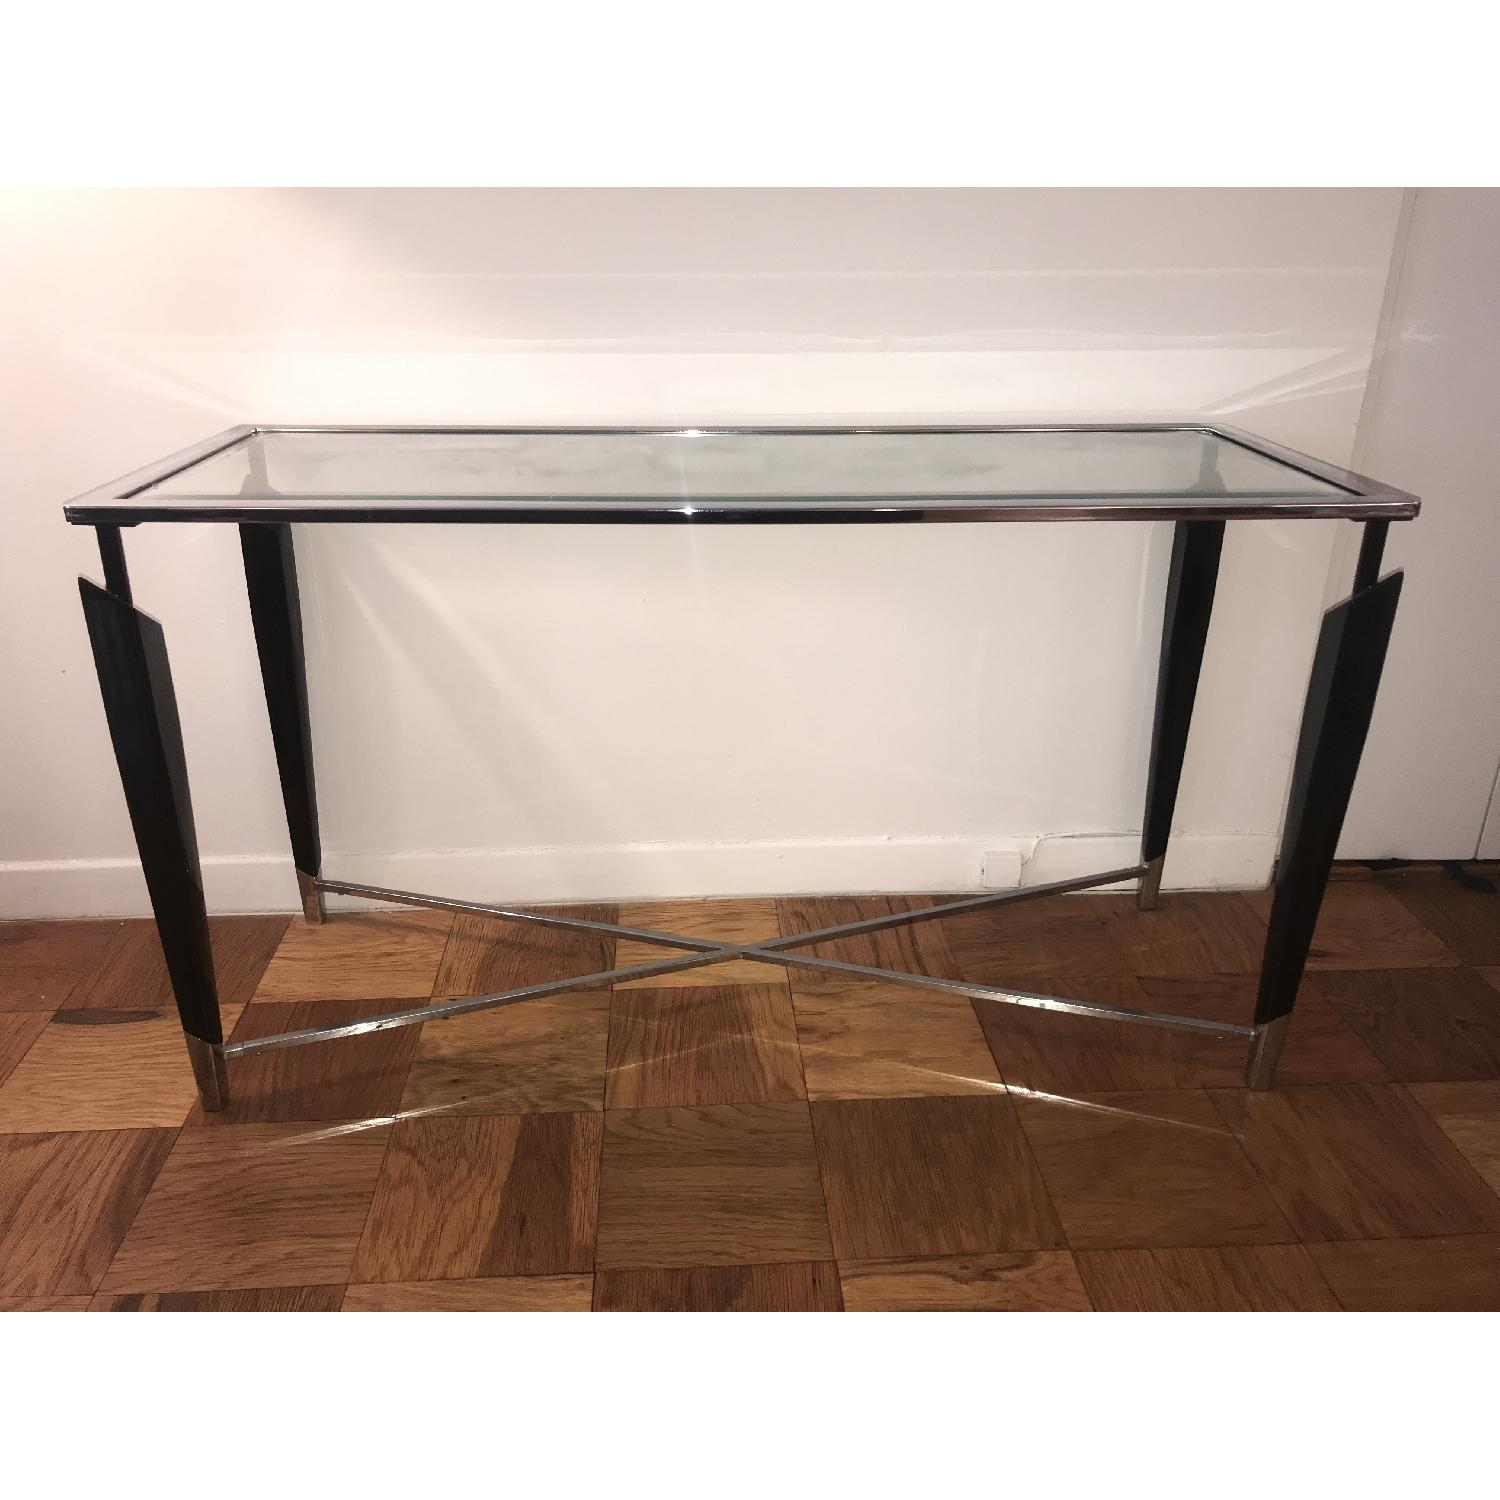 Home Goods Glass Console Table - image-1